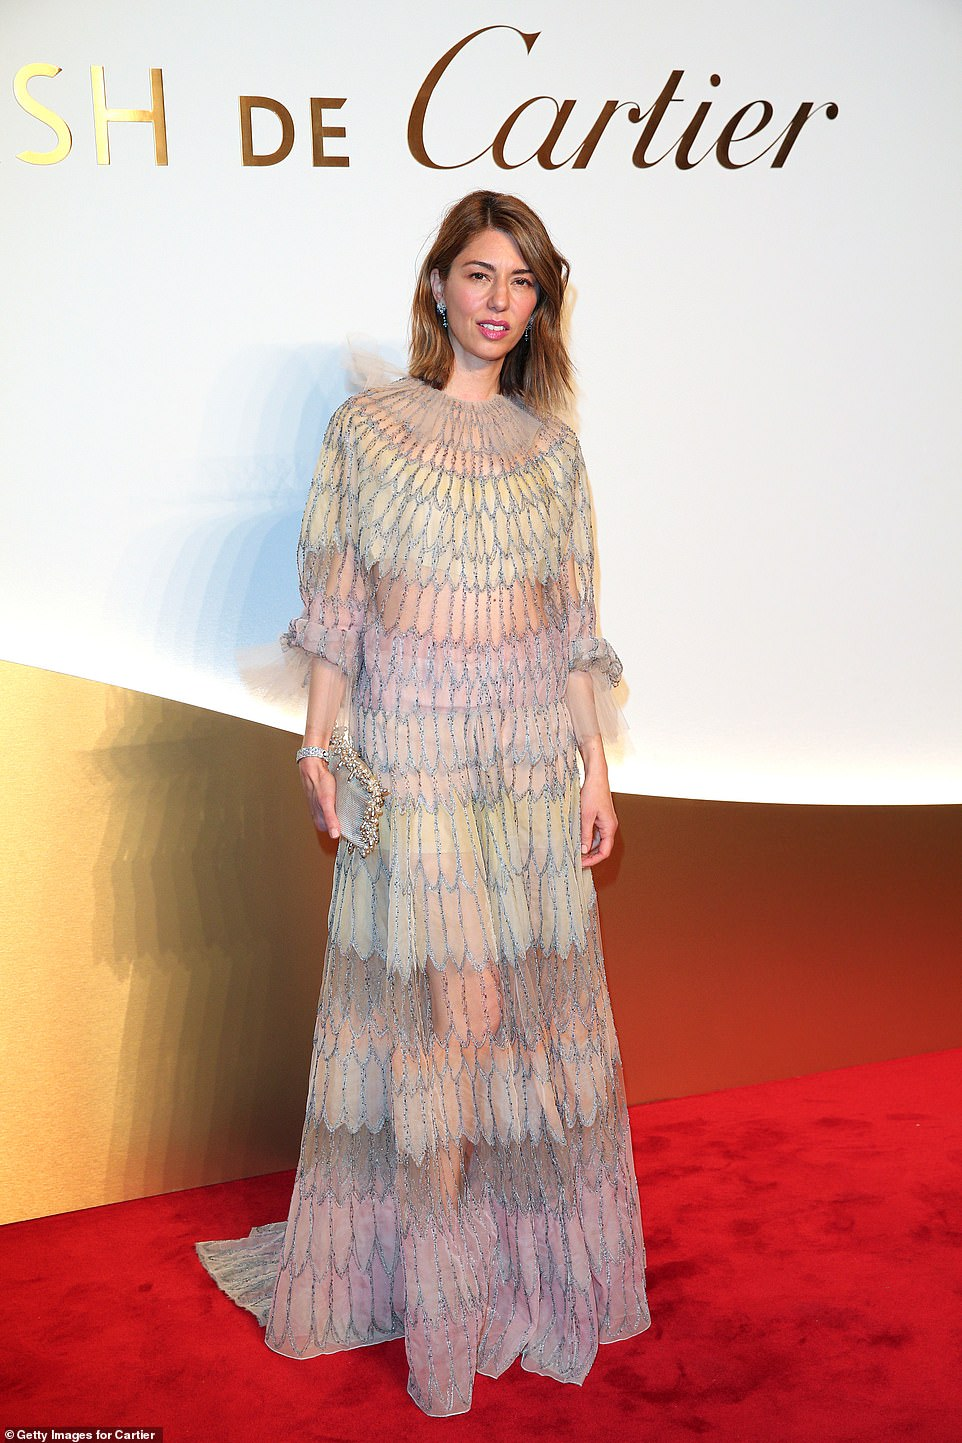 Sofia-Coppola-Cartier-Event .jpg